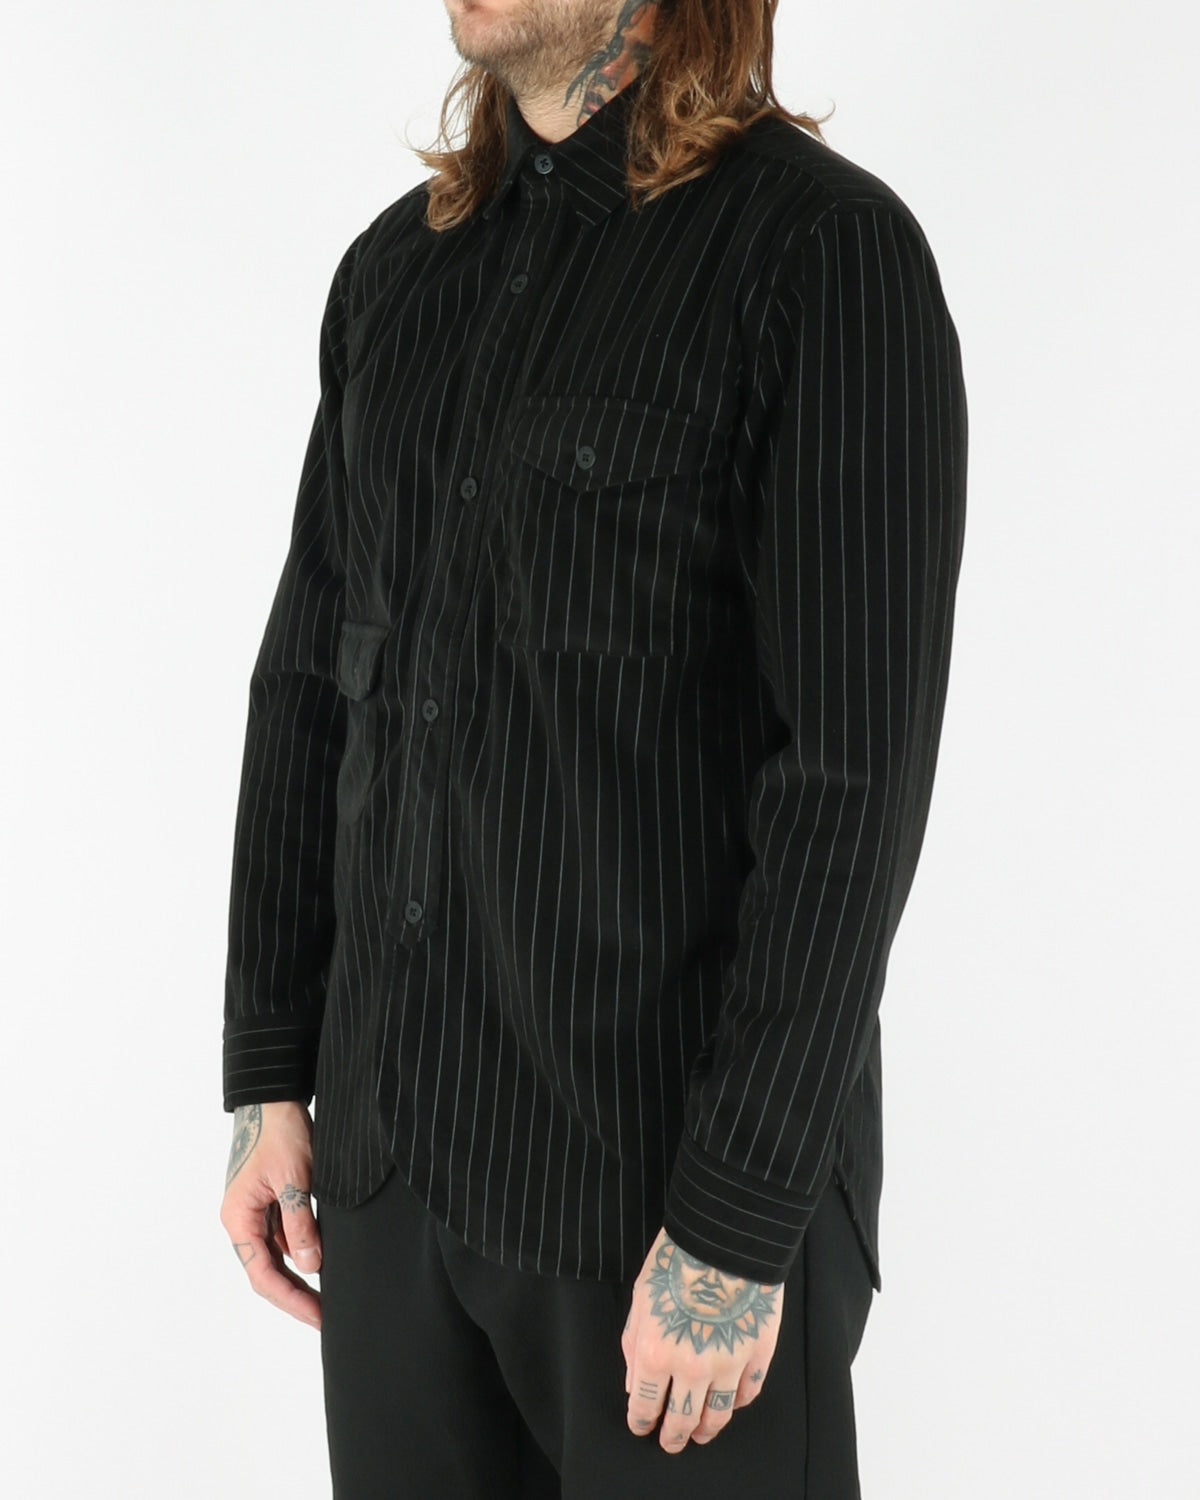 han kjobenhavn_army shirt_pinstripe_velour black_view_2_3